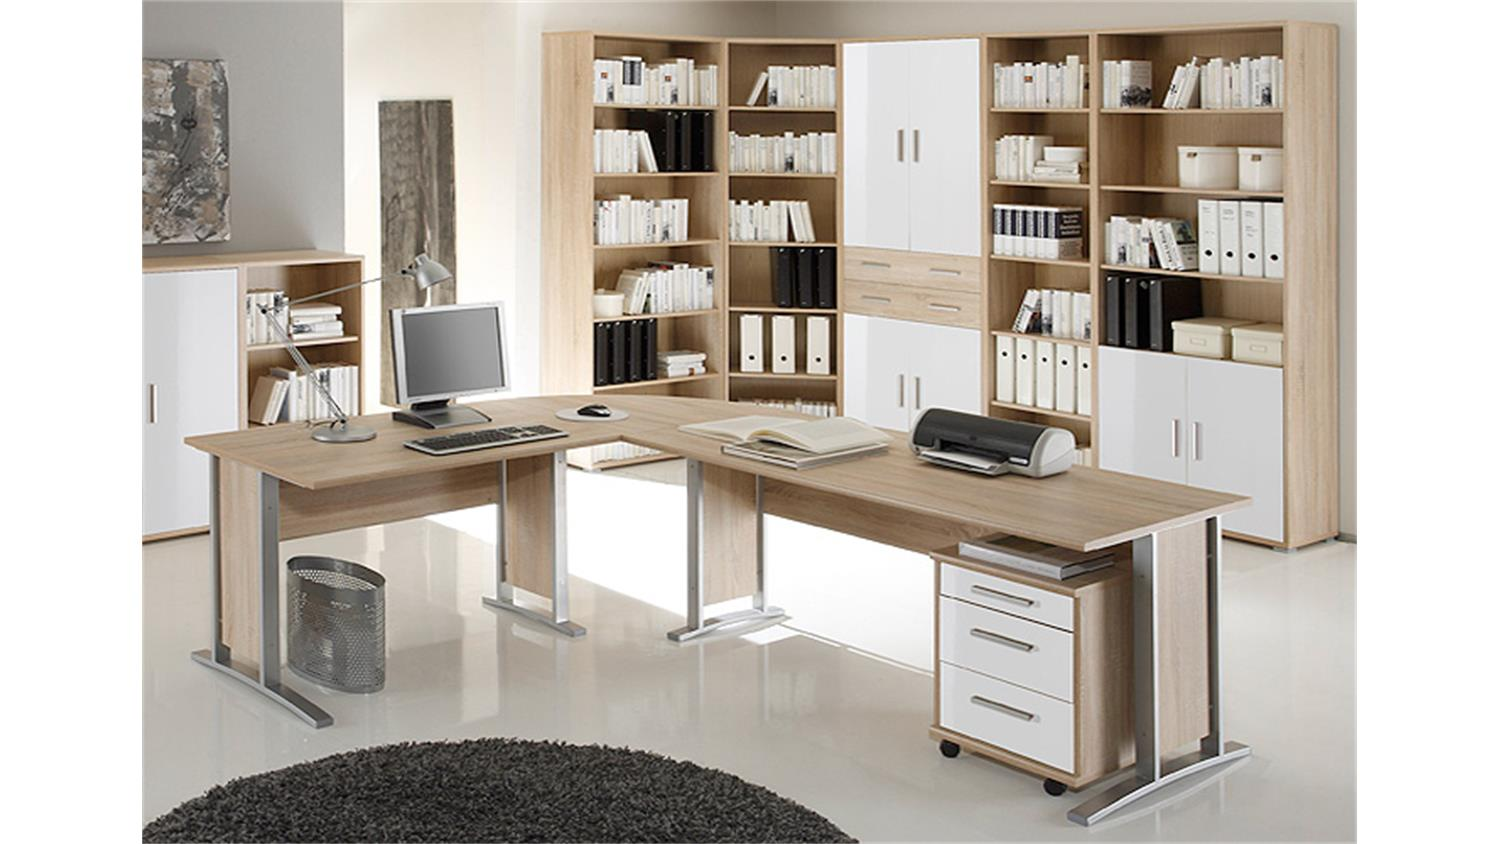 arbeitszimmer b ro set 2 office line sonoma eiche und wei. Black Bedroom Furniture Sets. Home Design Ideas